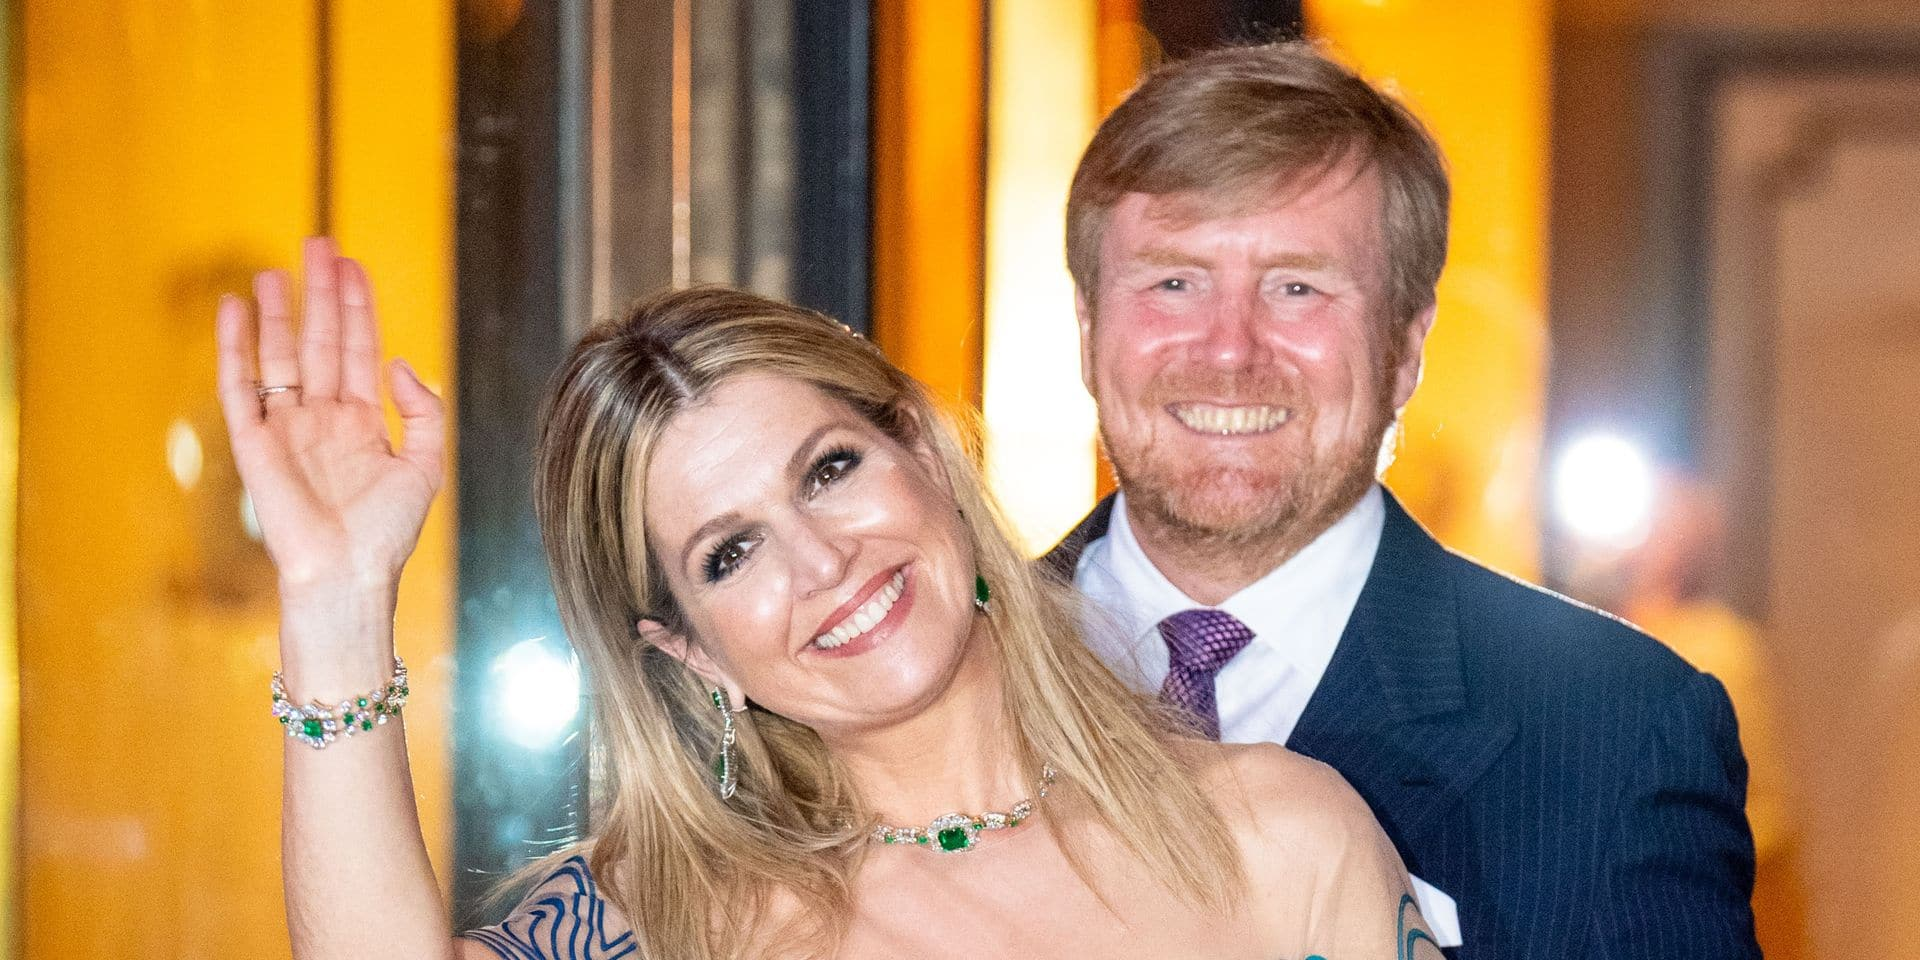 Recordings Of TV Broadcast On The Occasion Of The 50th Birthday Of Queen Maxima, Amsterdam, The Netherlands